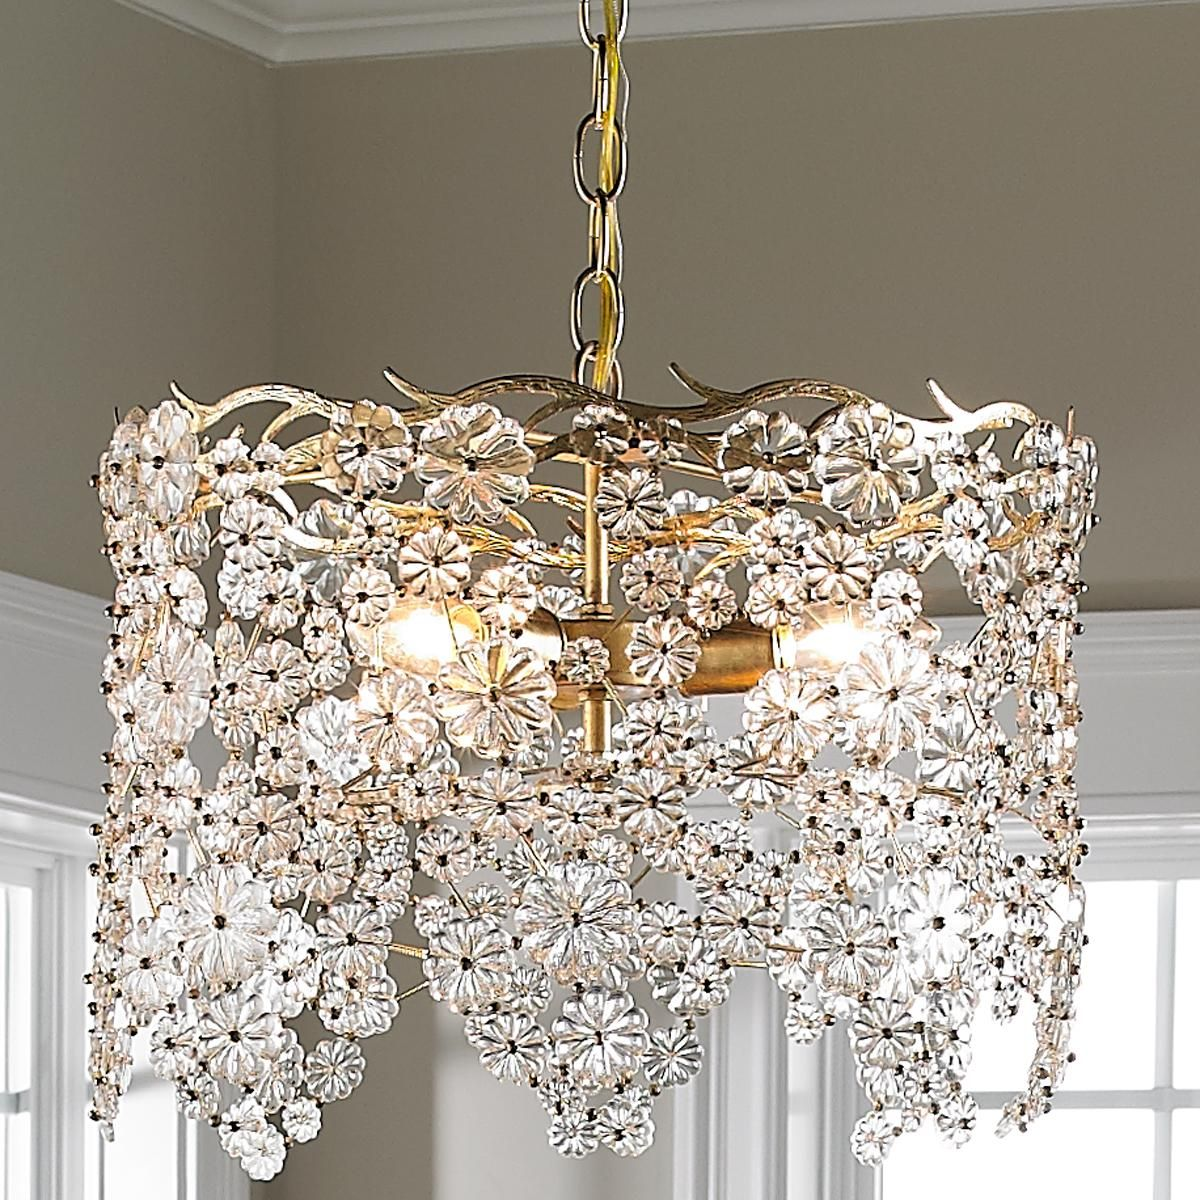 Glass lace drum chandelier drum chandelier drums and chandeliers glass lace drum chandelier arubaitofo Choice Image